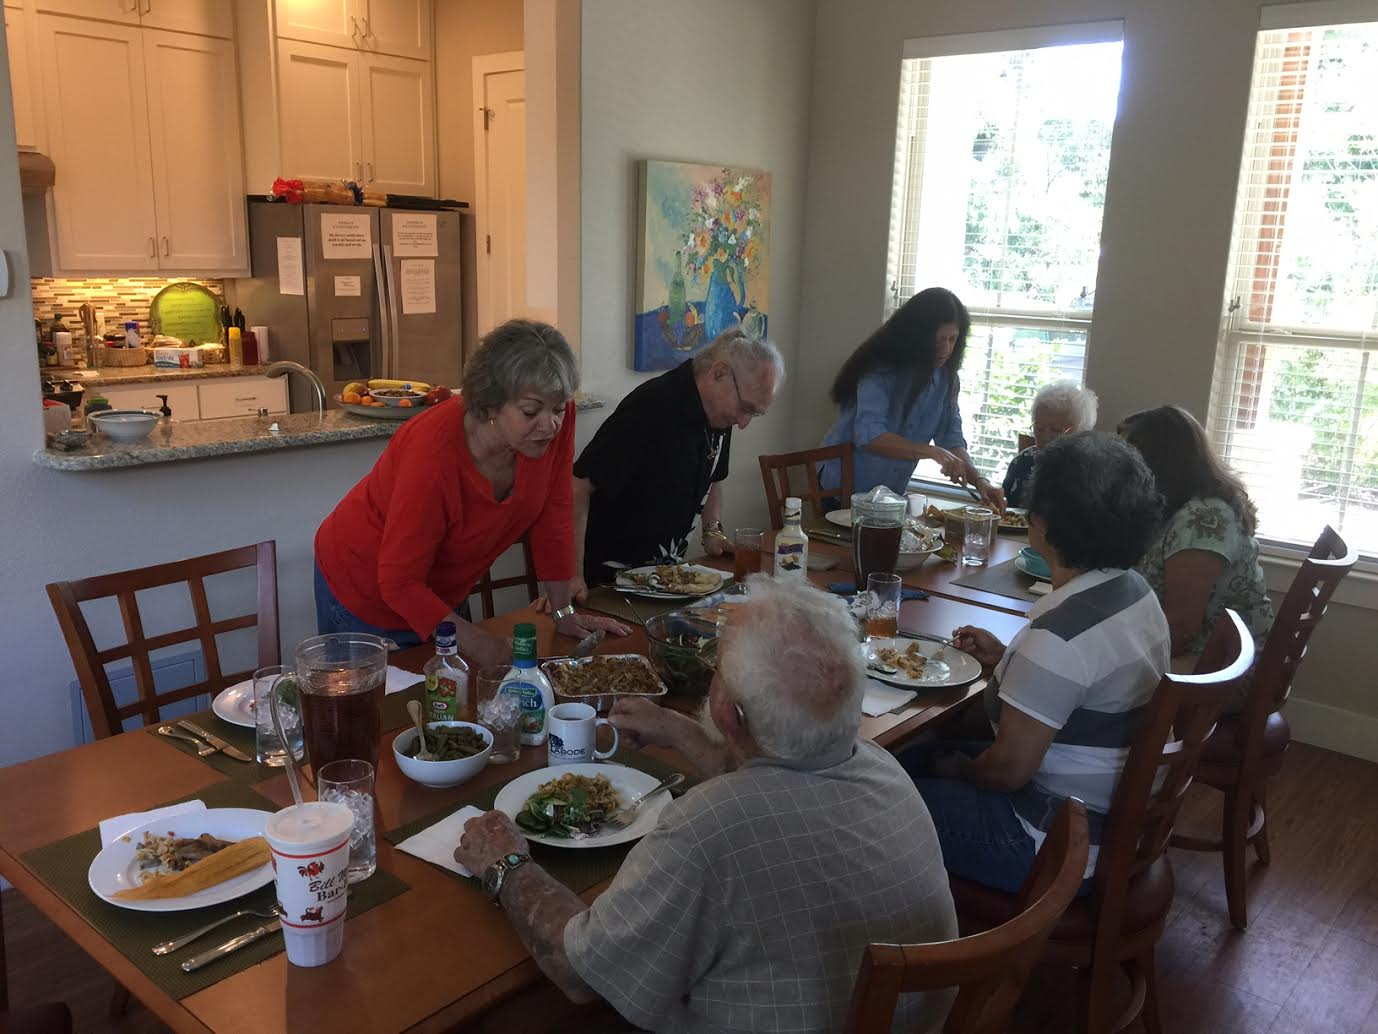 We have lunch everyday at ABODE. It's not unusual for family members of past Guests' to stop by and join us for a bite to eat and good conversation.